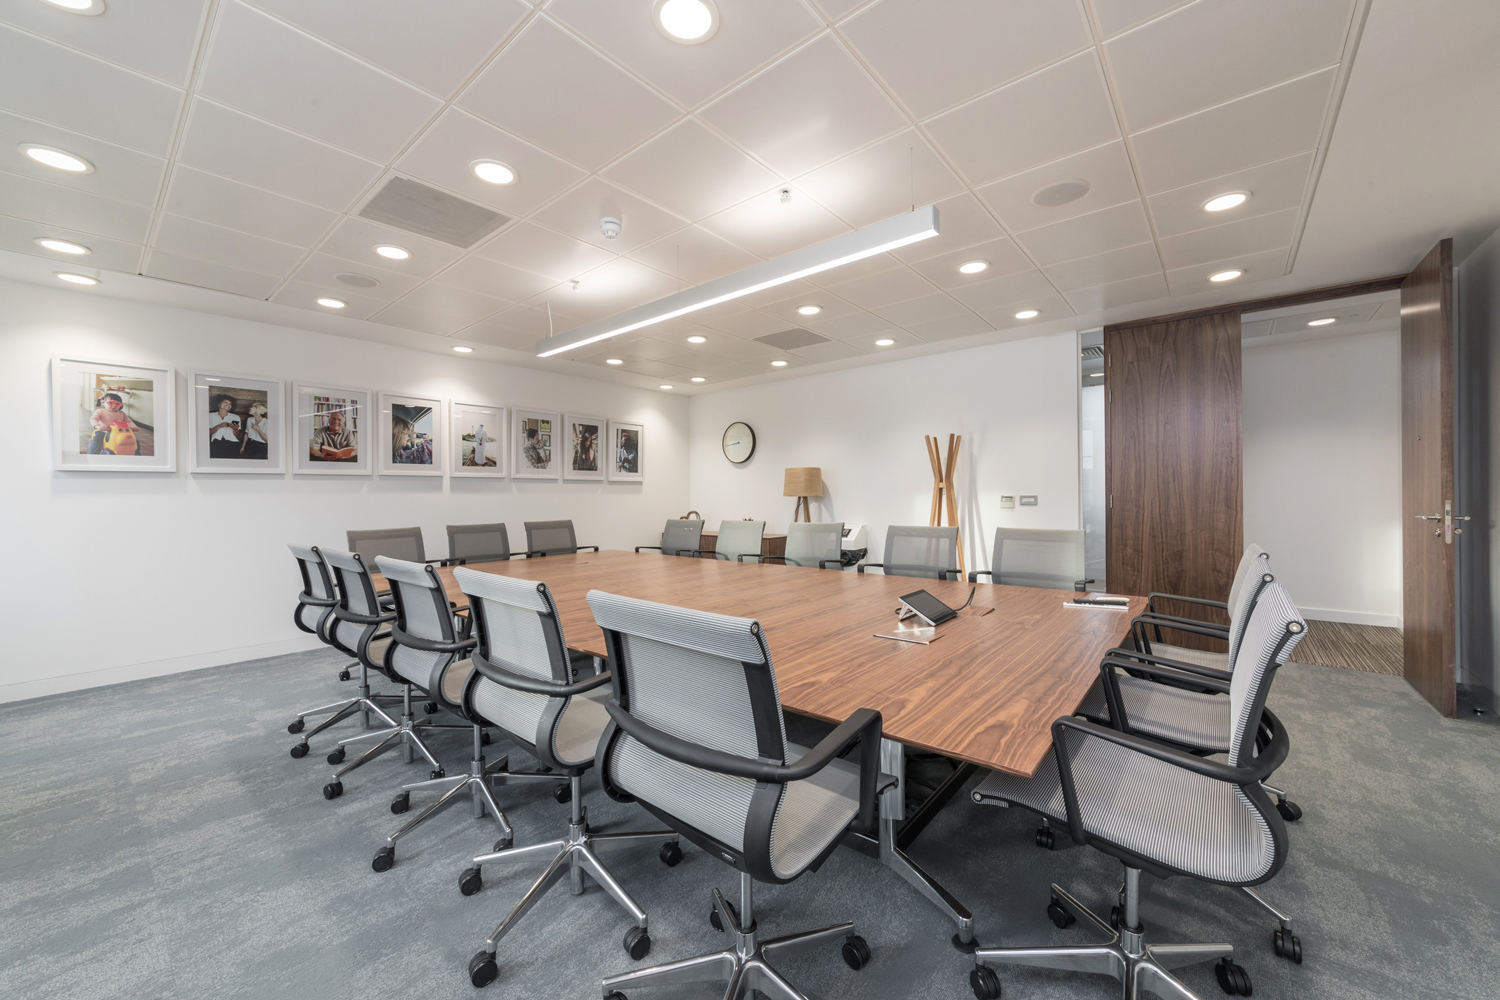 Meeting room with polished wood table and ergonomic chairs